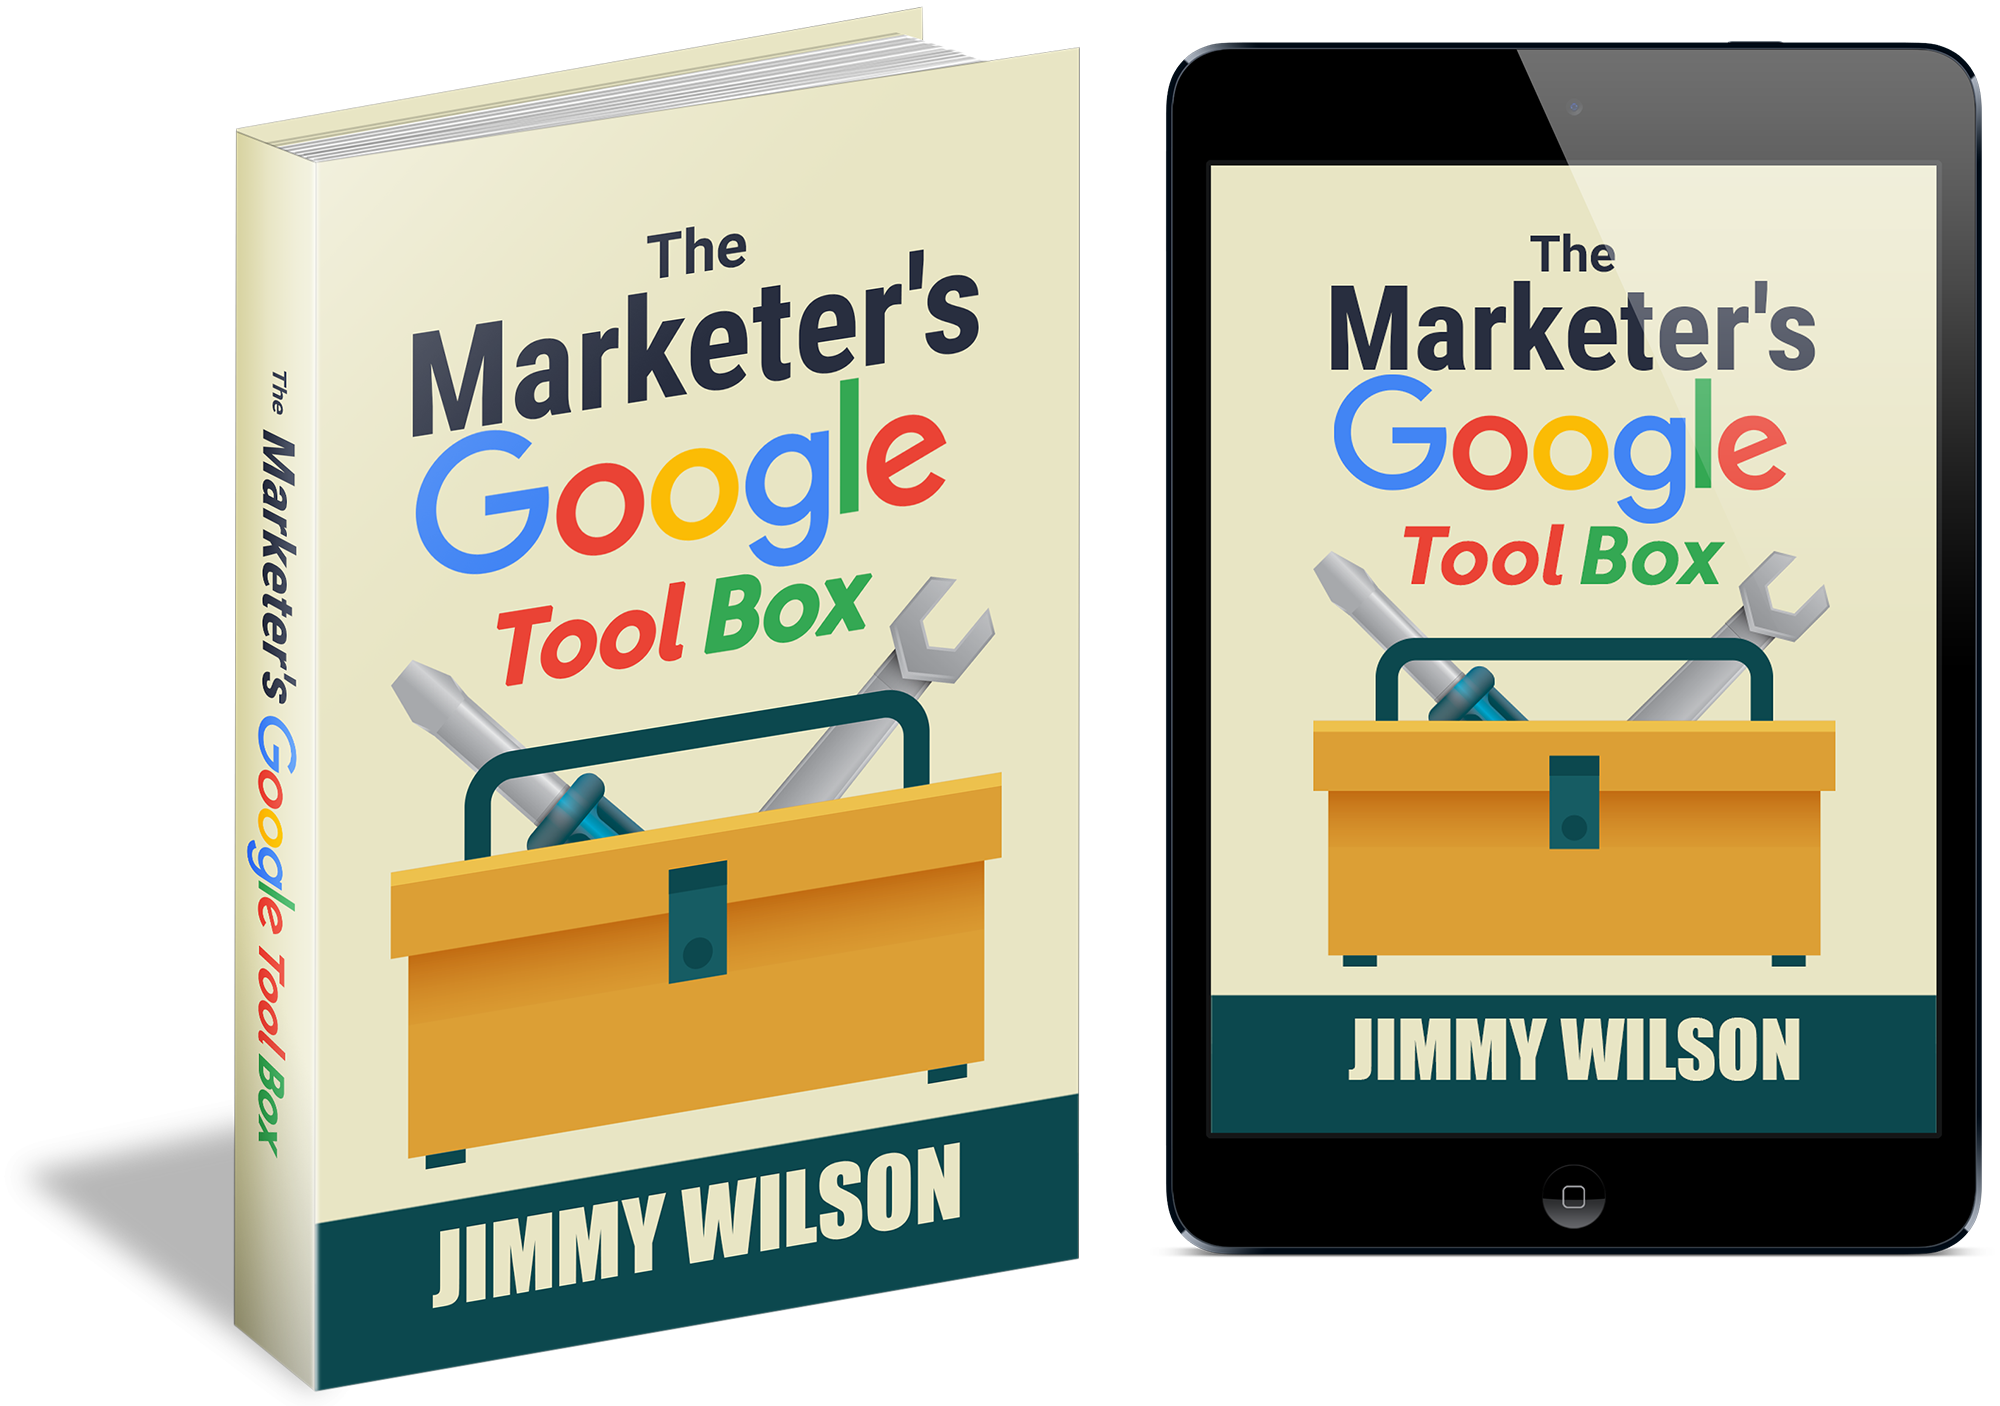 The Marketers Google Tool Box